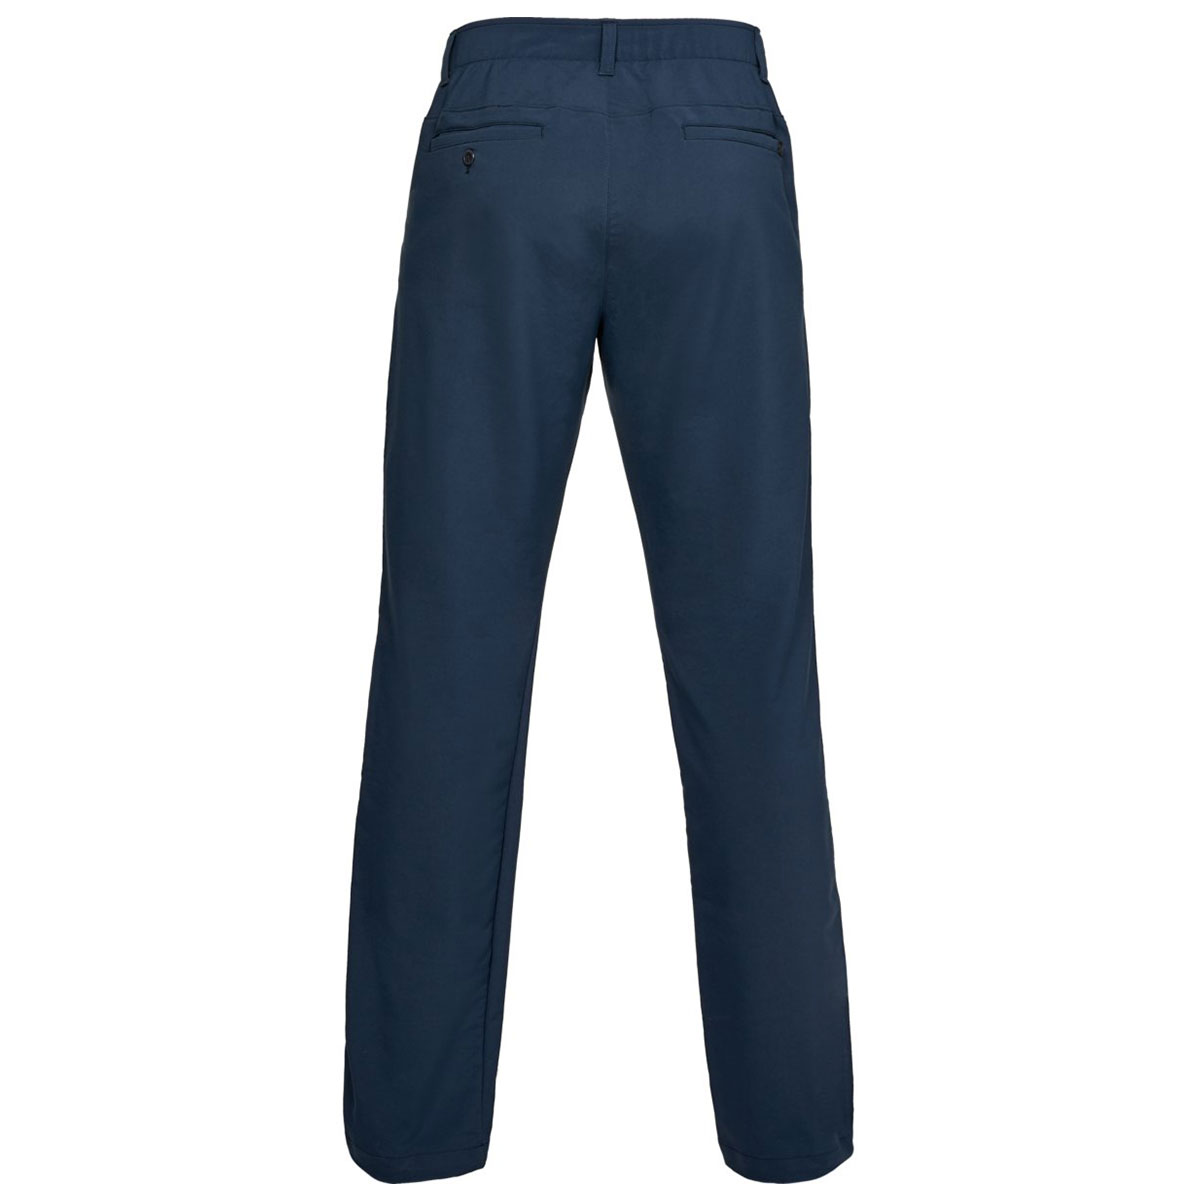 Under-Armour-Mens-2019-EU-Performance-Taper-Soft-Stretch-Golf-Trousers thumbnail 3